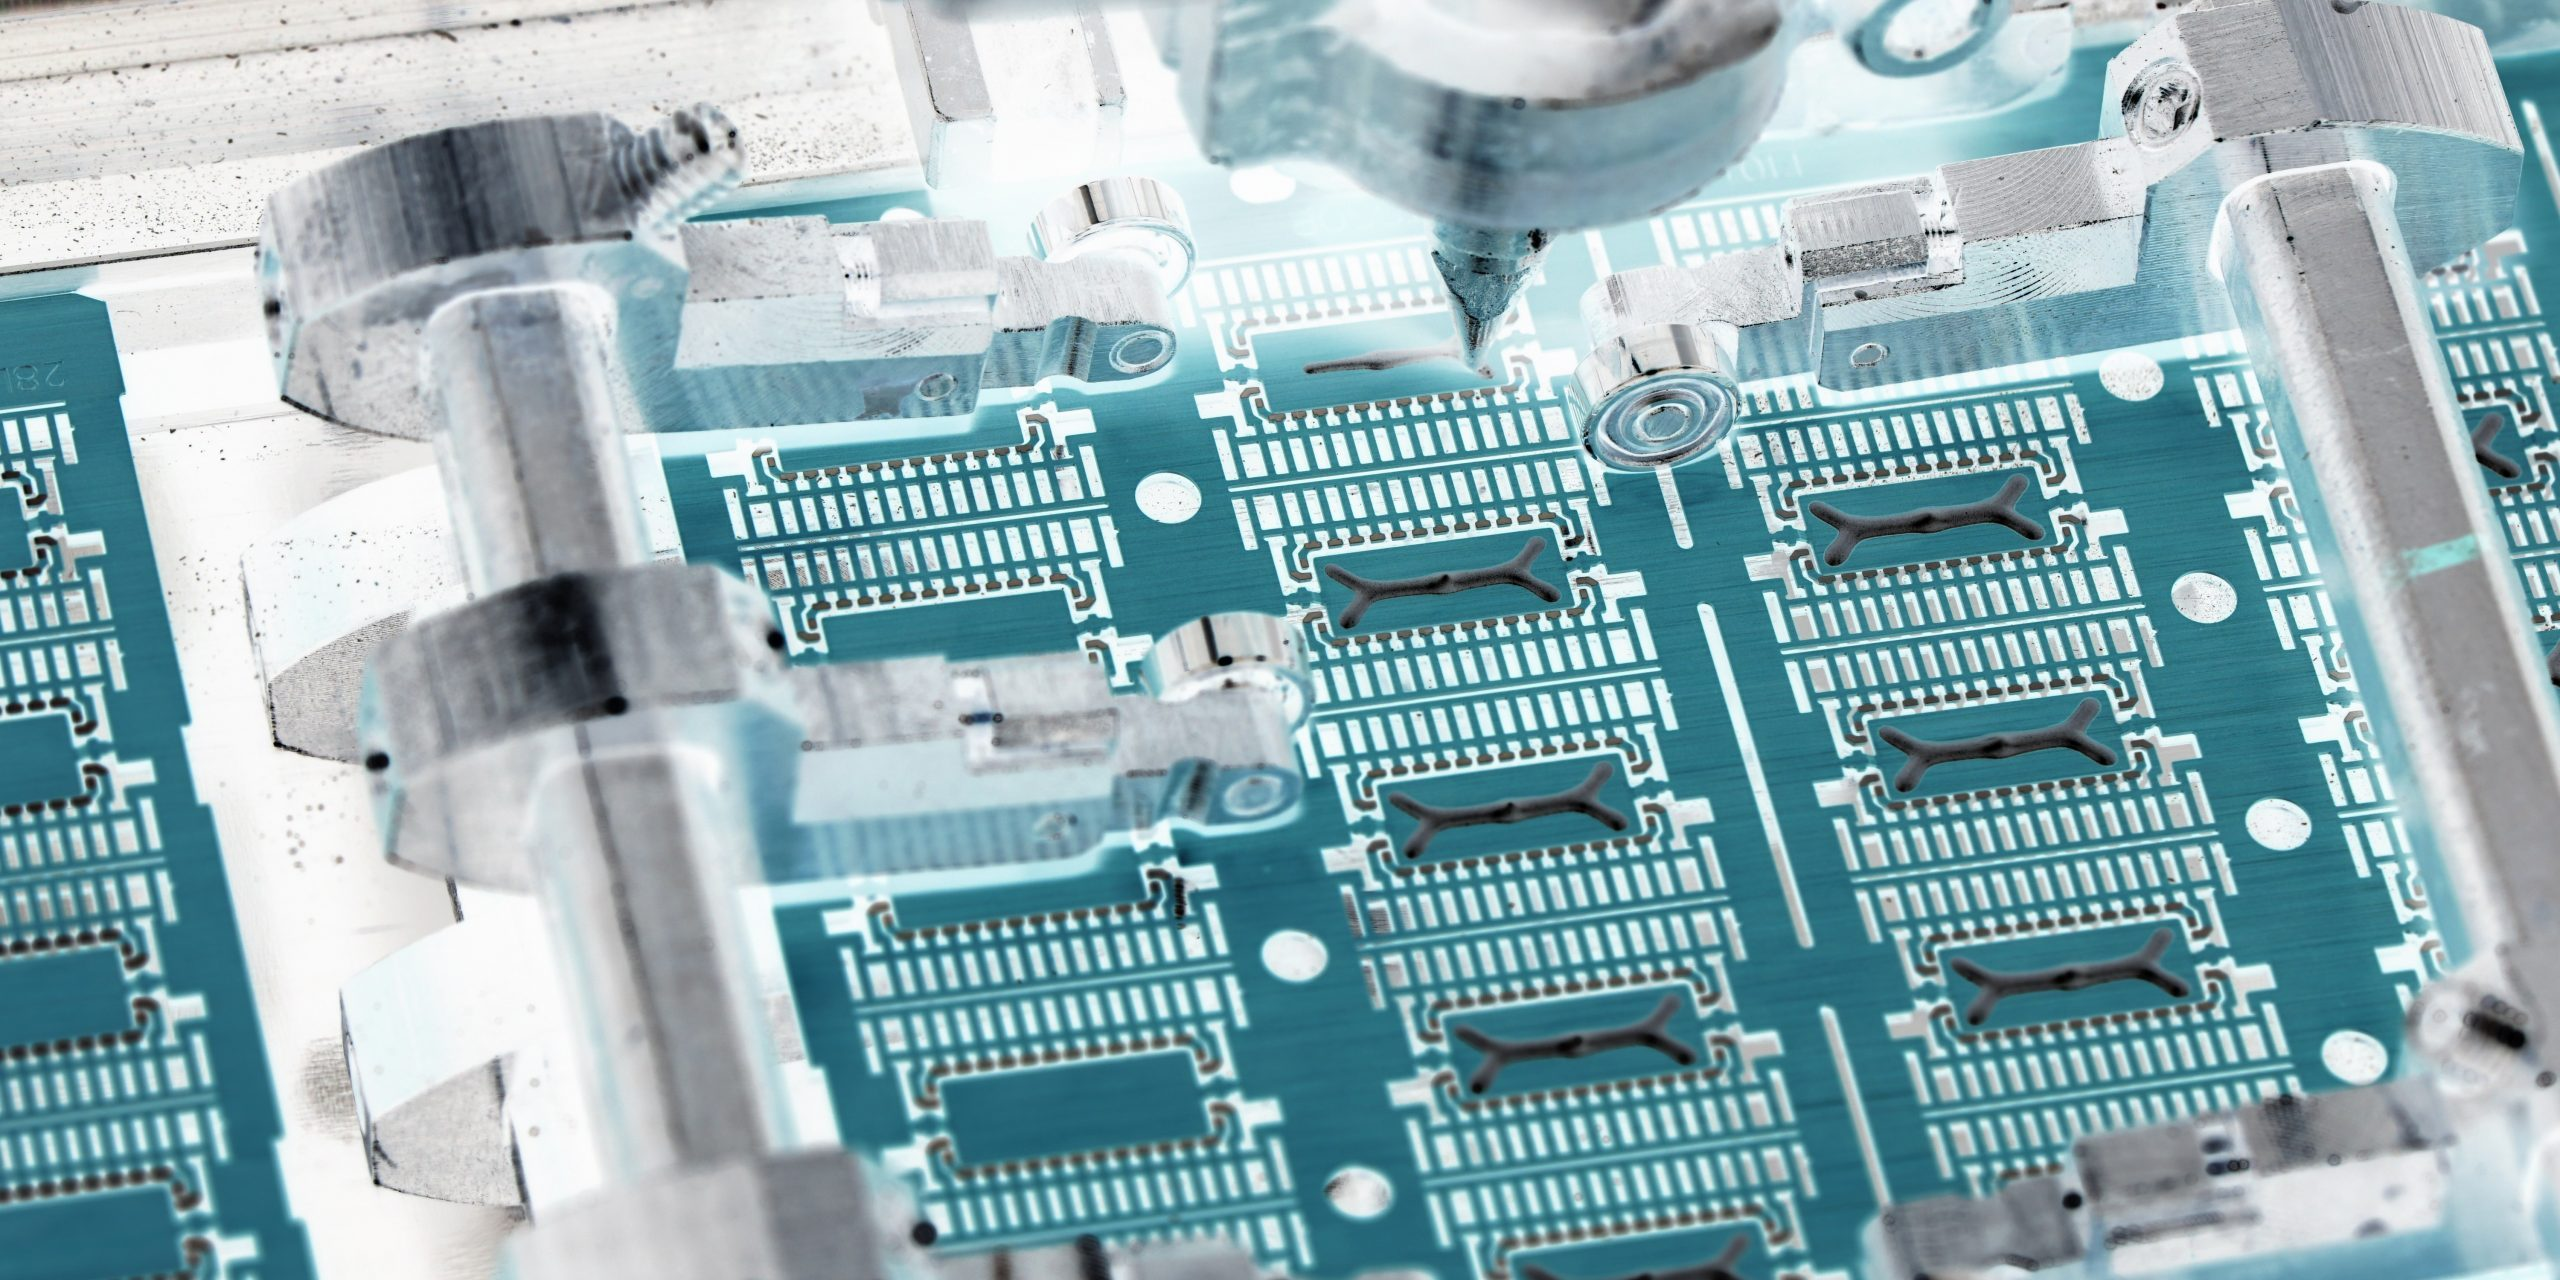 Image of PCB functionalized with Aculon surface modification technology.